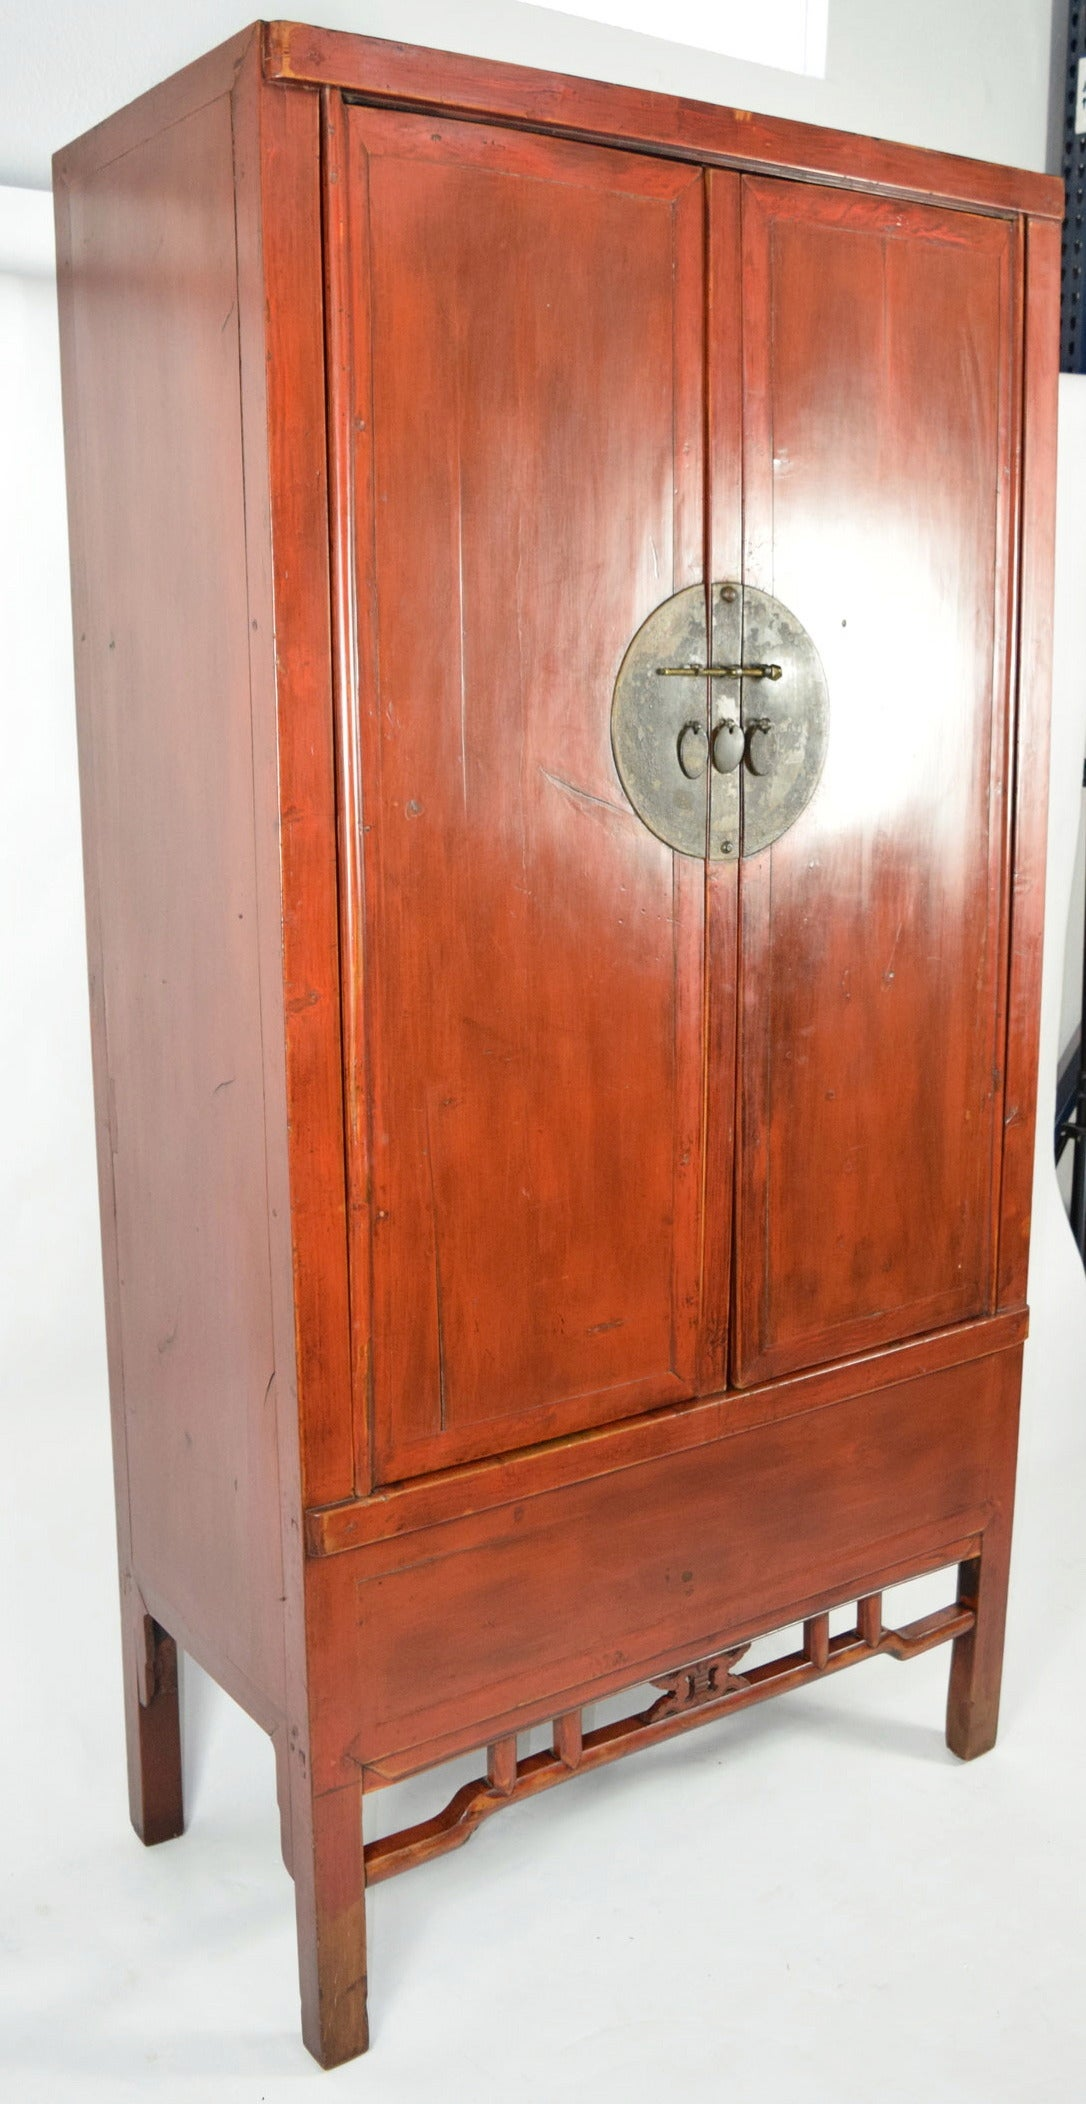 A beautiful large antique Chinese red armoire wedding cabinets with plenty  of storage and style for - Chinese Red Armoire Wedding Cabinet At 1stdibs